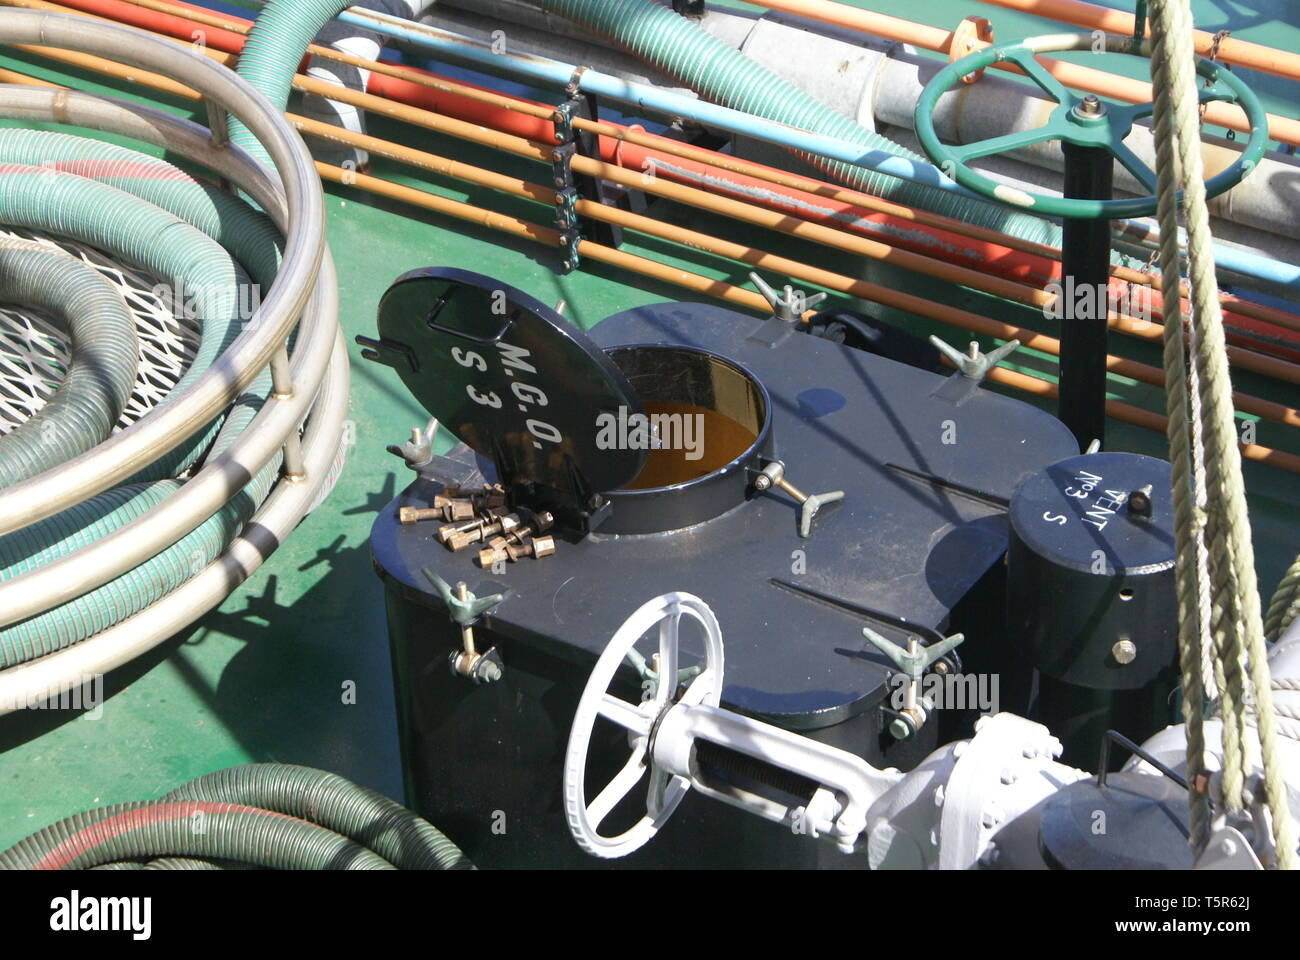 Bunker Fuel Stock Photos & Bunker Fuel Stock Images - Alamy